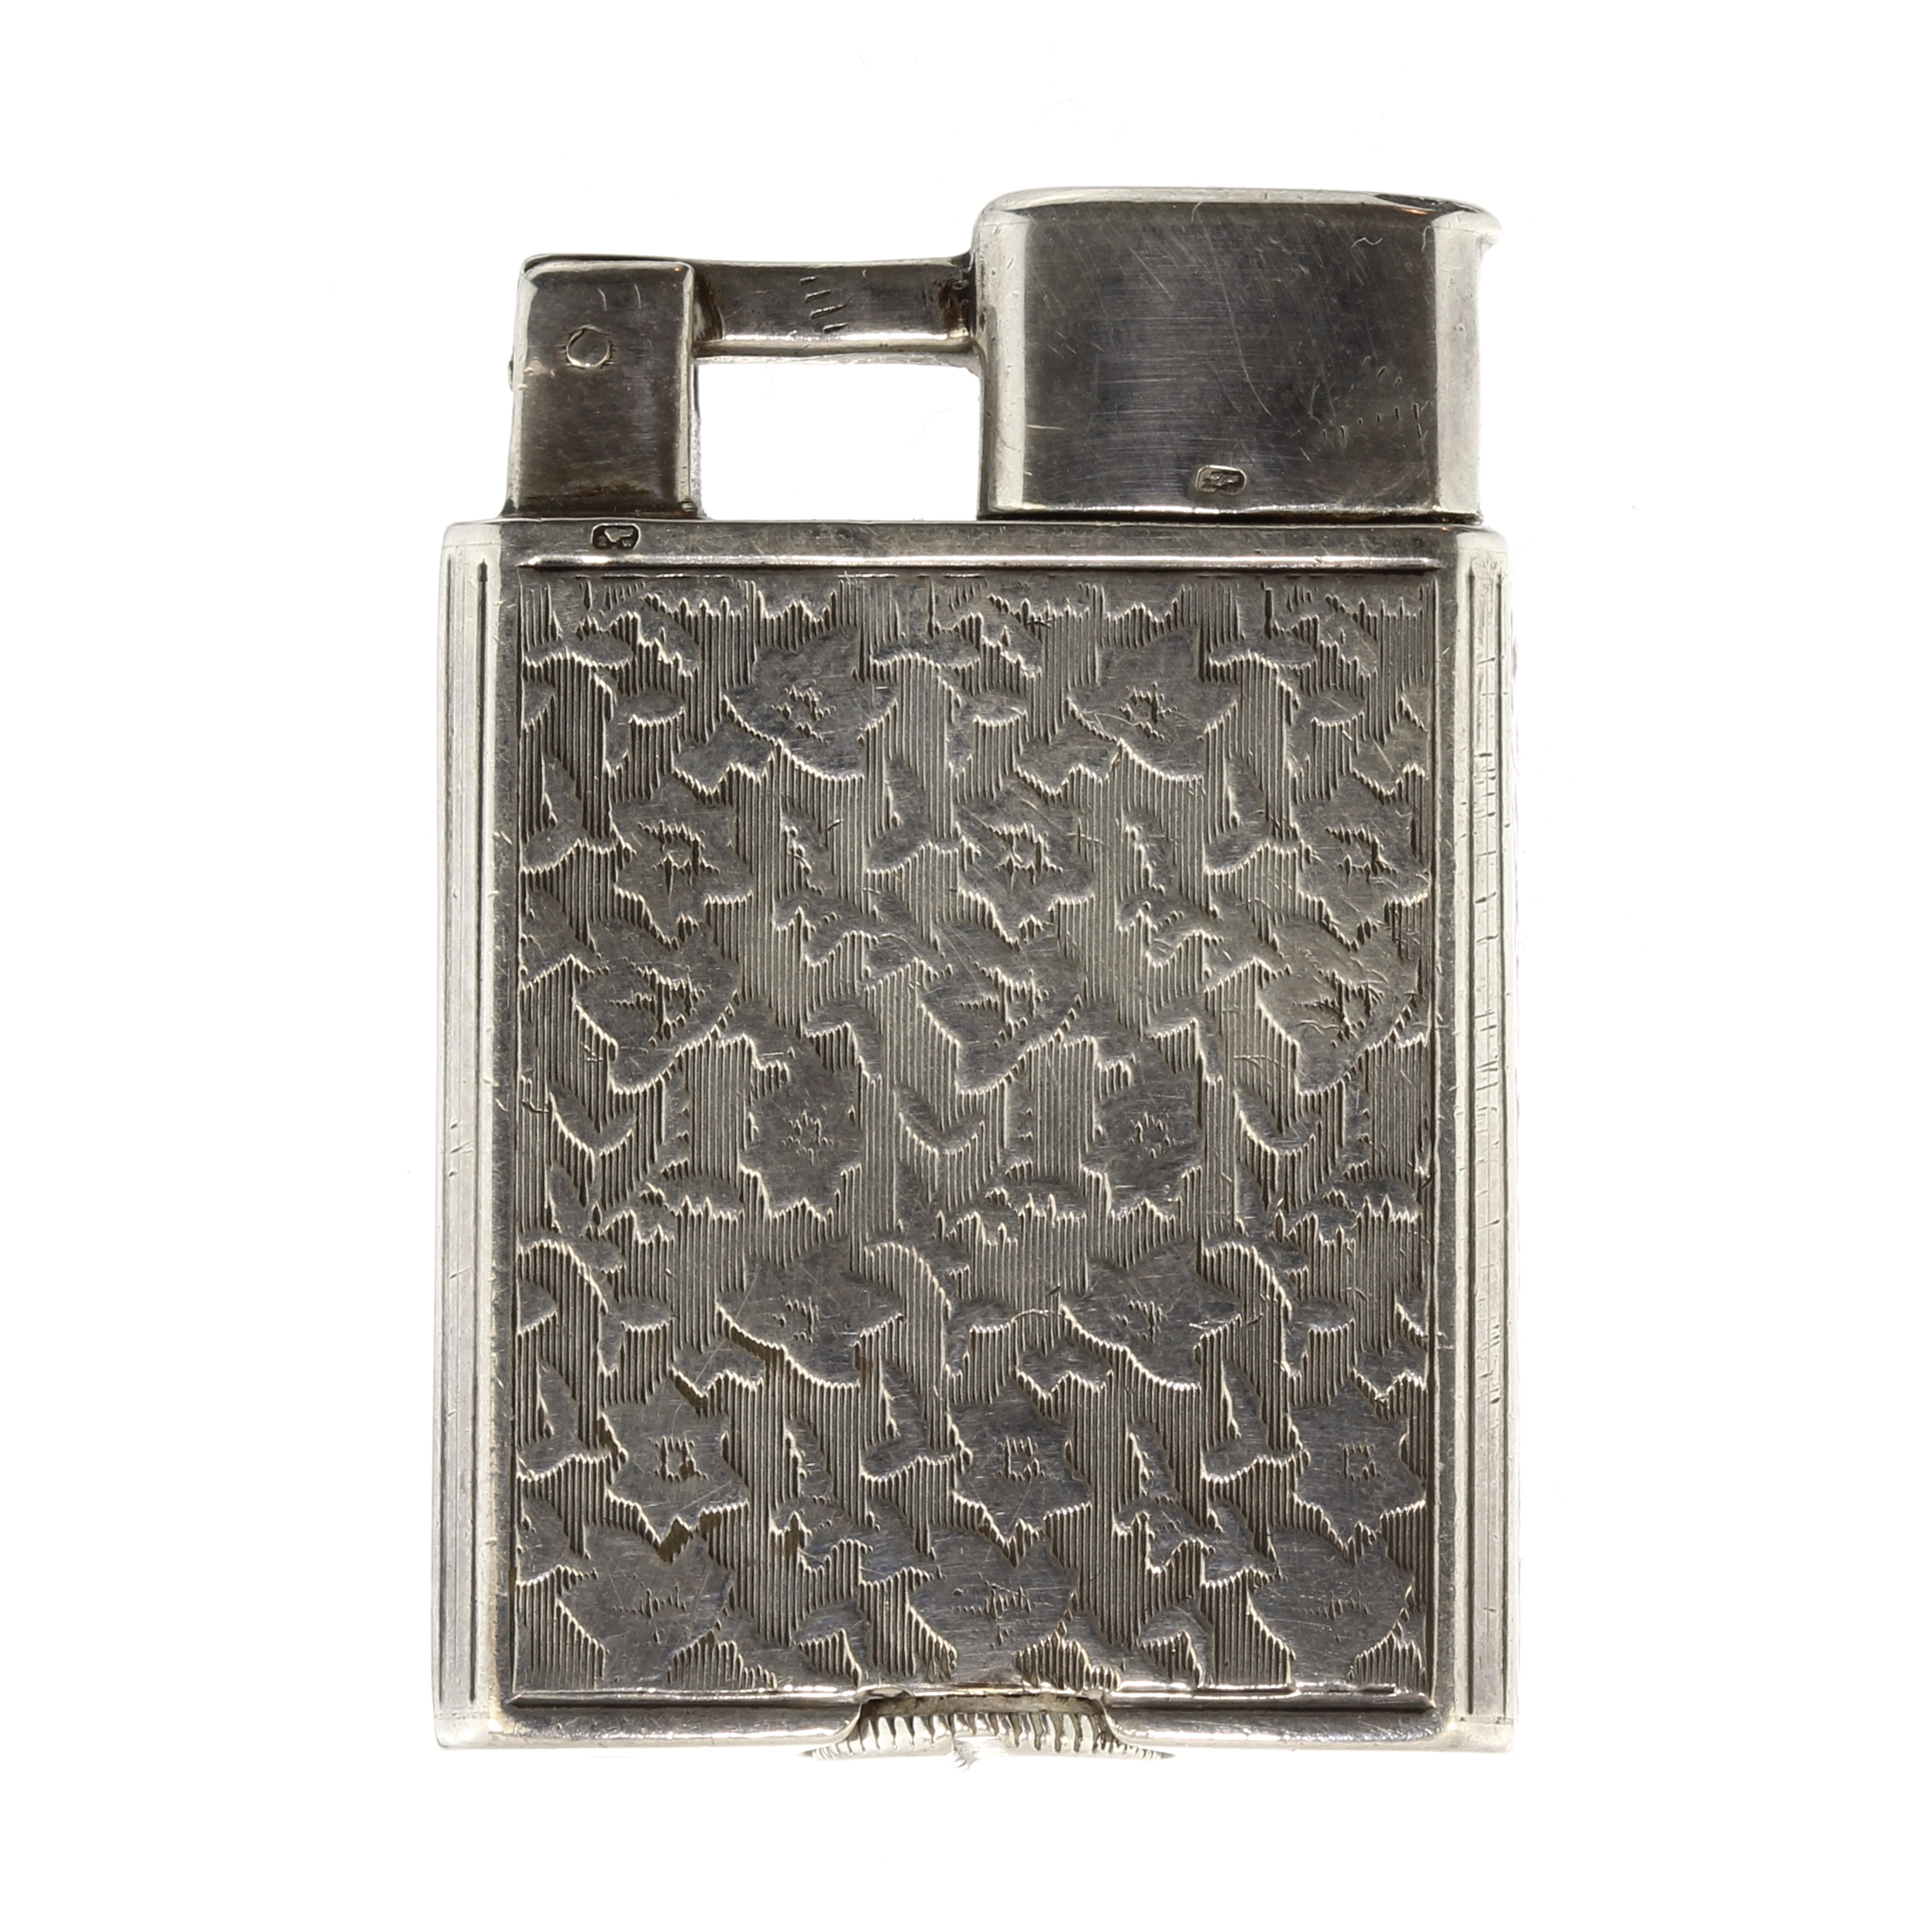 Los 242 - An antique Sterling silver cigarette lighter the rectangular body with flat chased floral decoration